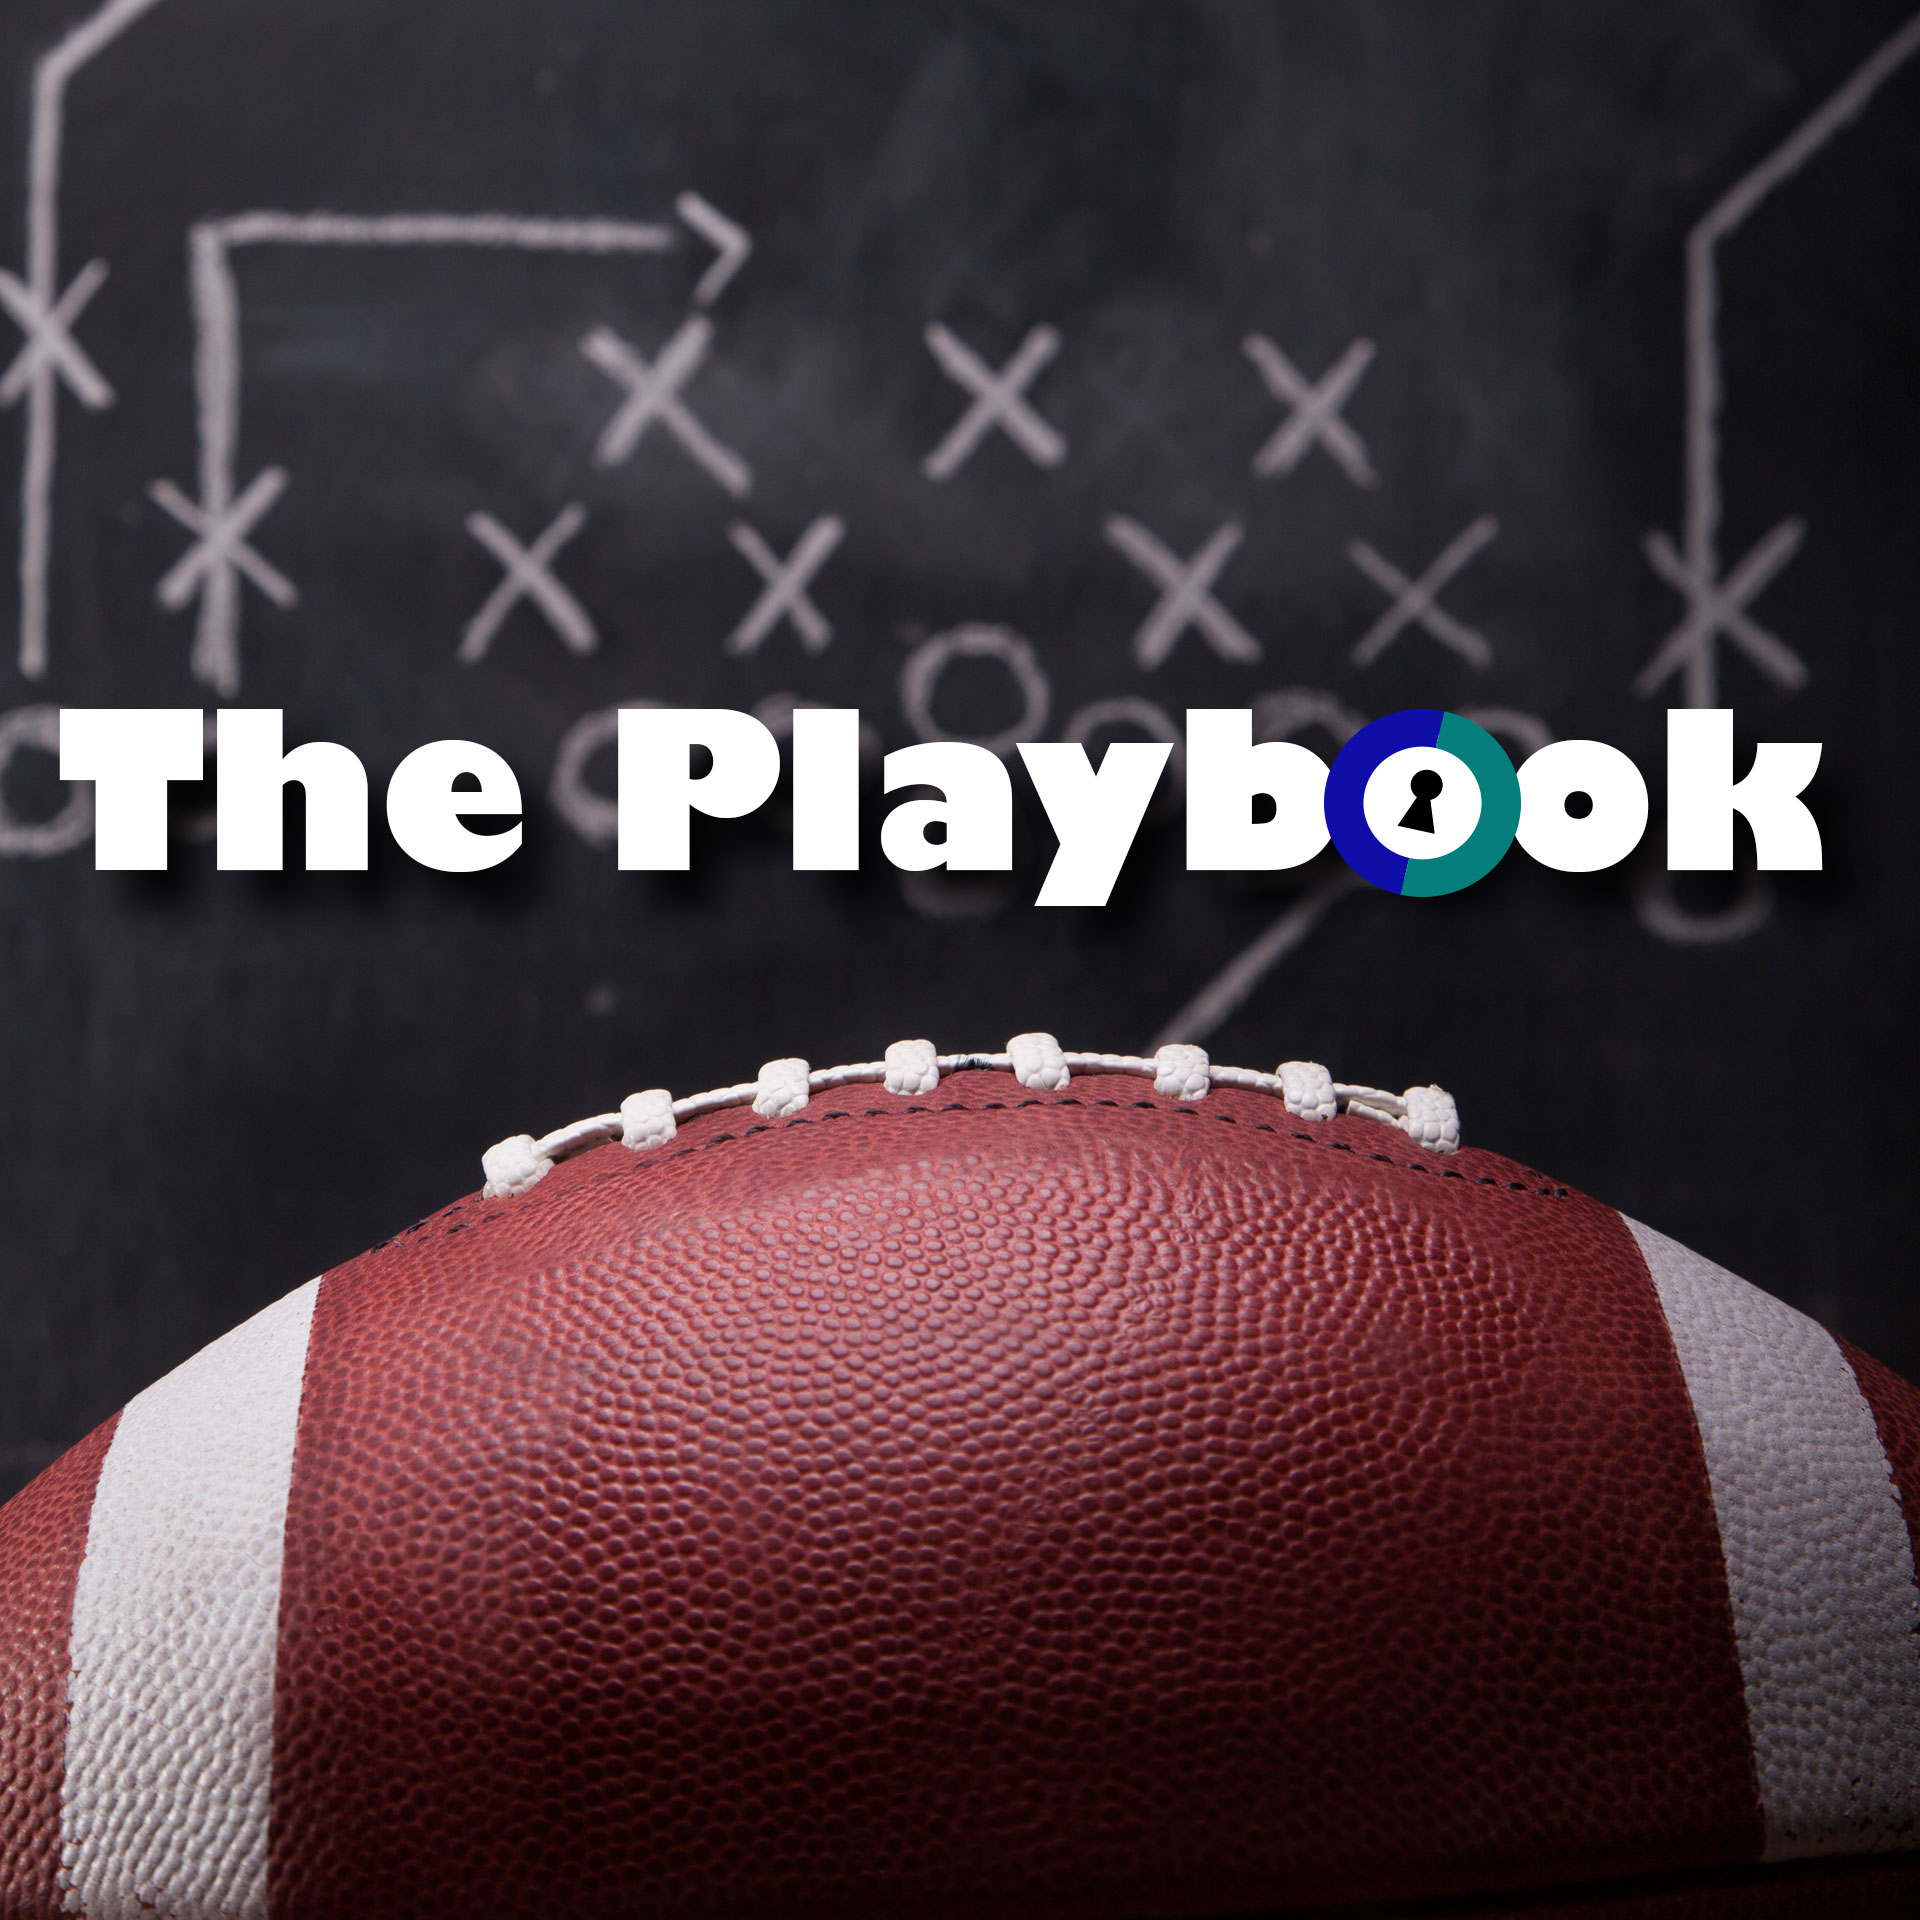 The Playbook Closes Labor Day